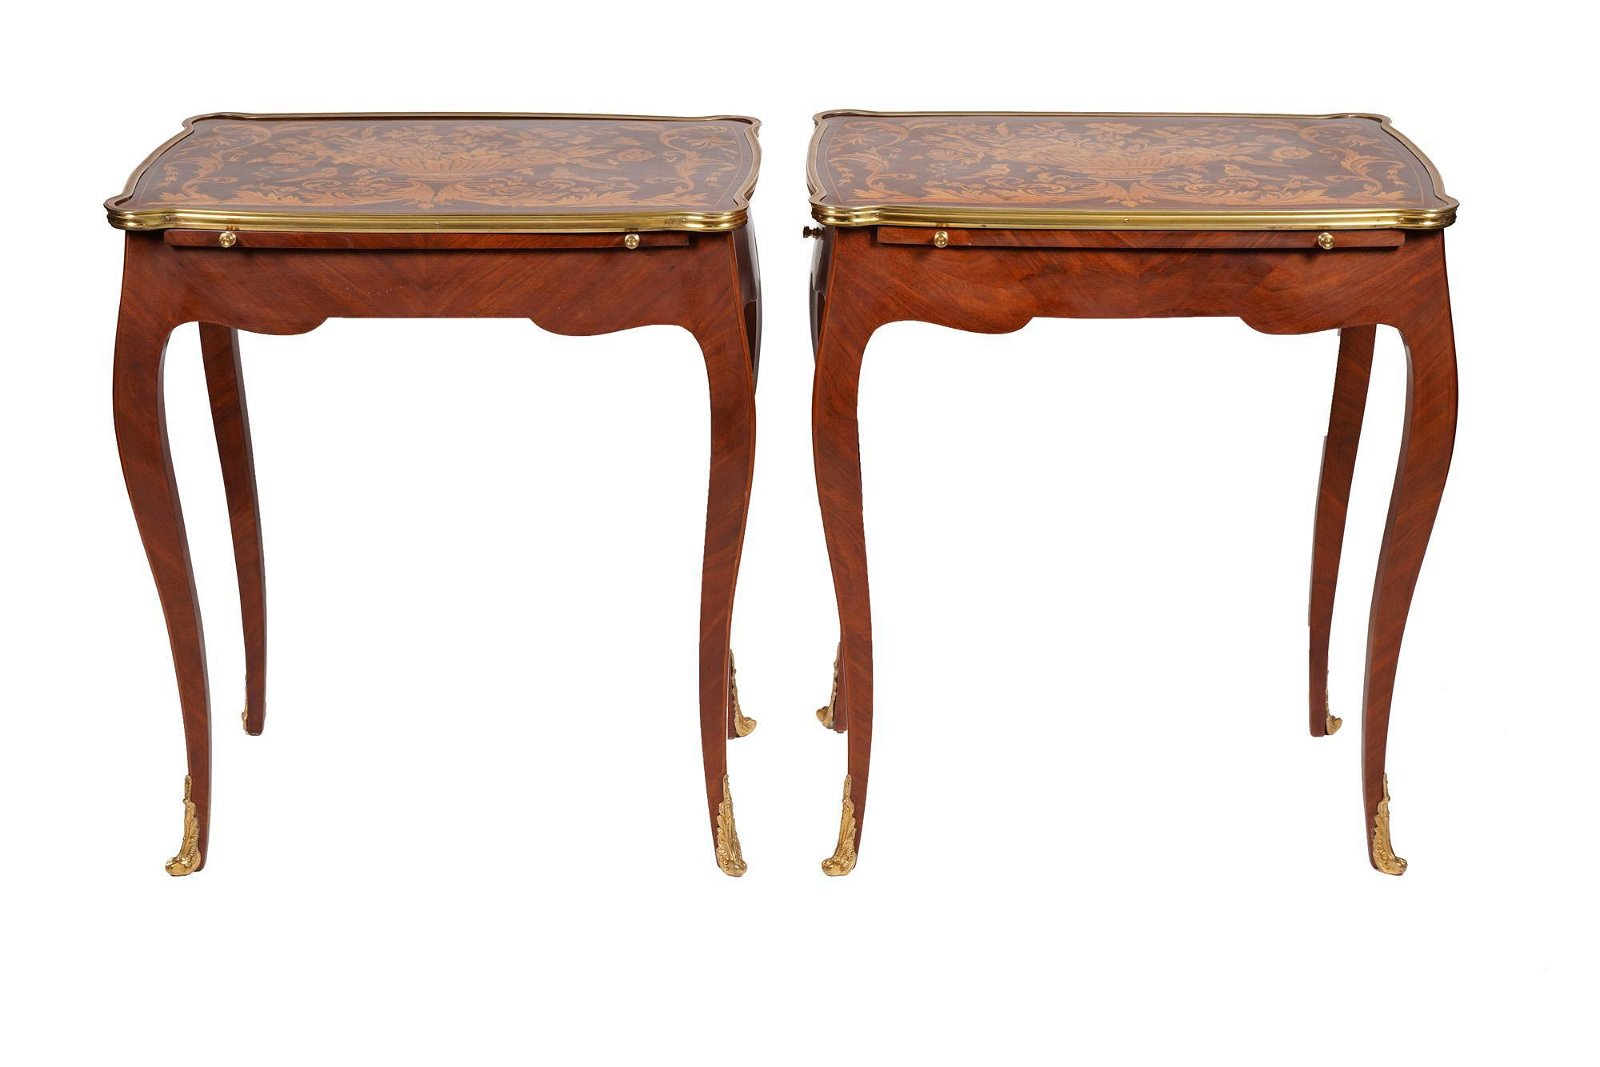 Pair Of Louis Xv Style Marquetry Tables